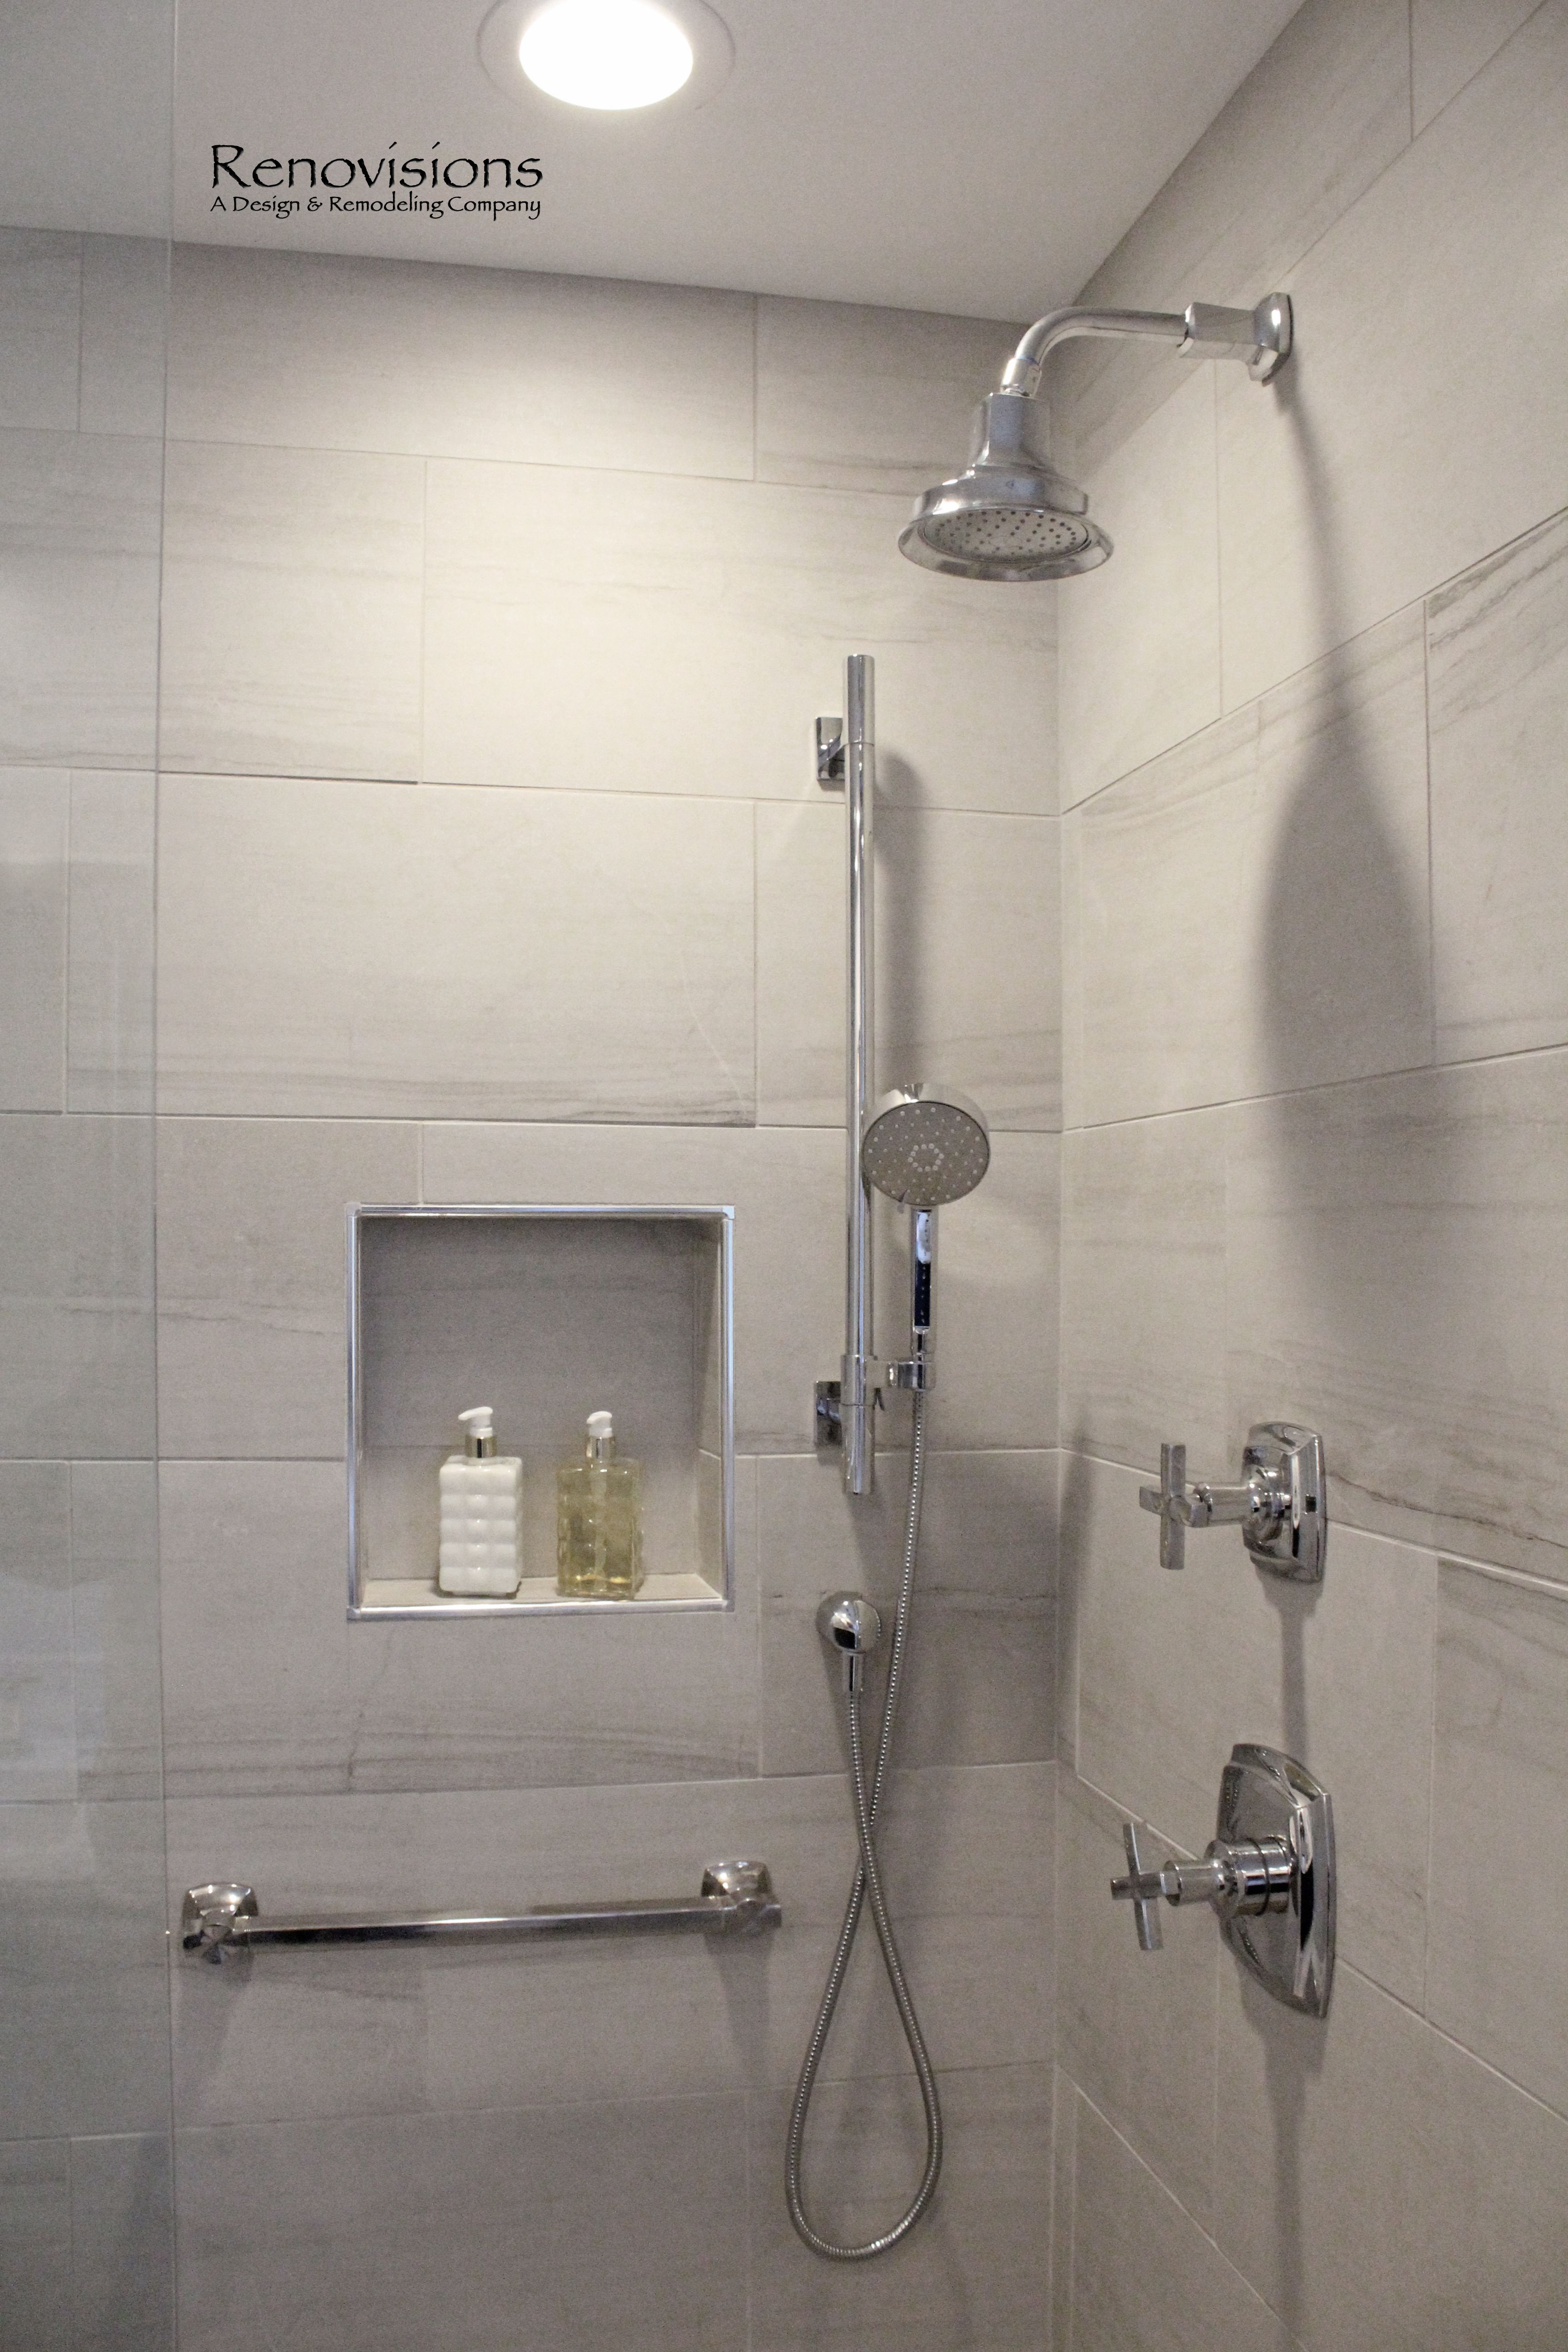 A pleted Master Bathroom remodel by Renovisions Walk in Shower